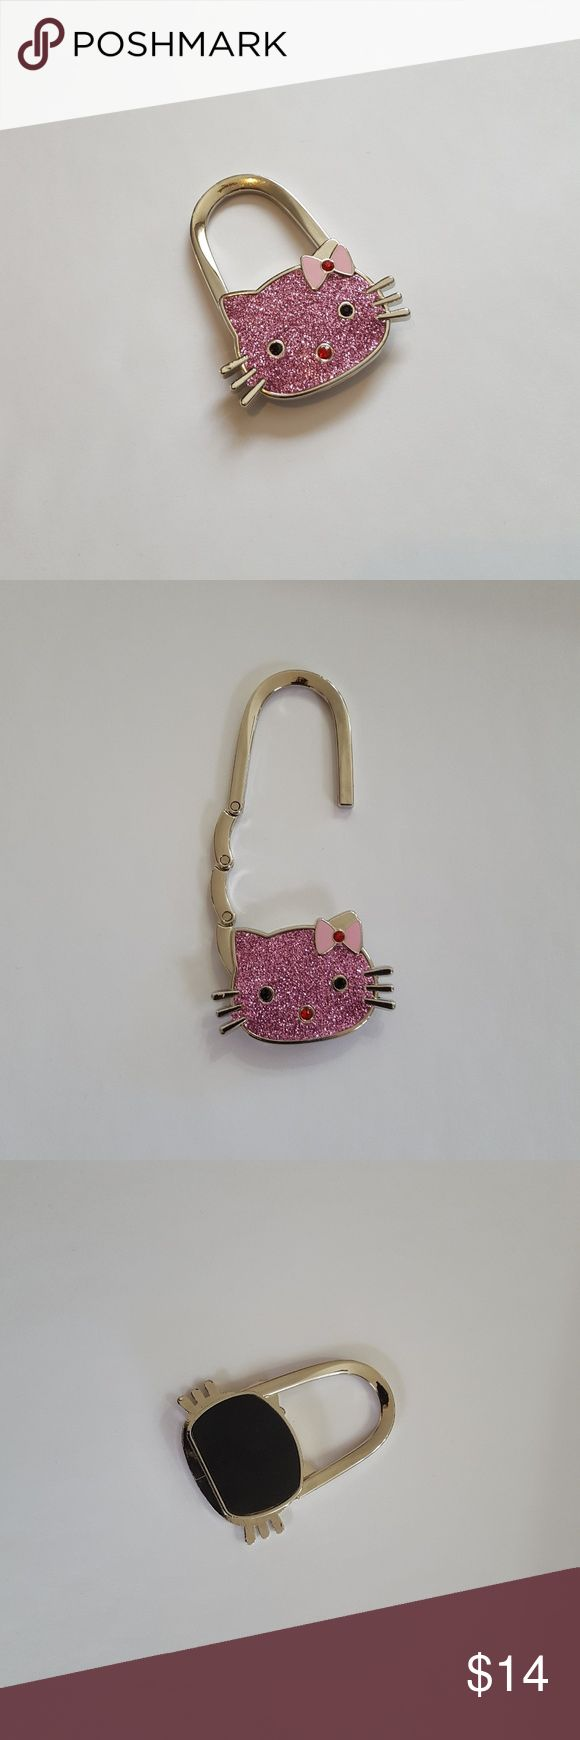 Hello Kitty Folding Purse Hook Hello Kitty folding purse hook. A must for your nice handbag or purse. Conveniently fits in your purse for use at restaurant tables, bars or restrooms to keep your purse clean. Accessories